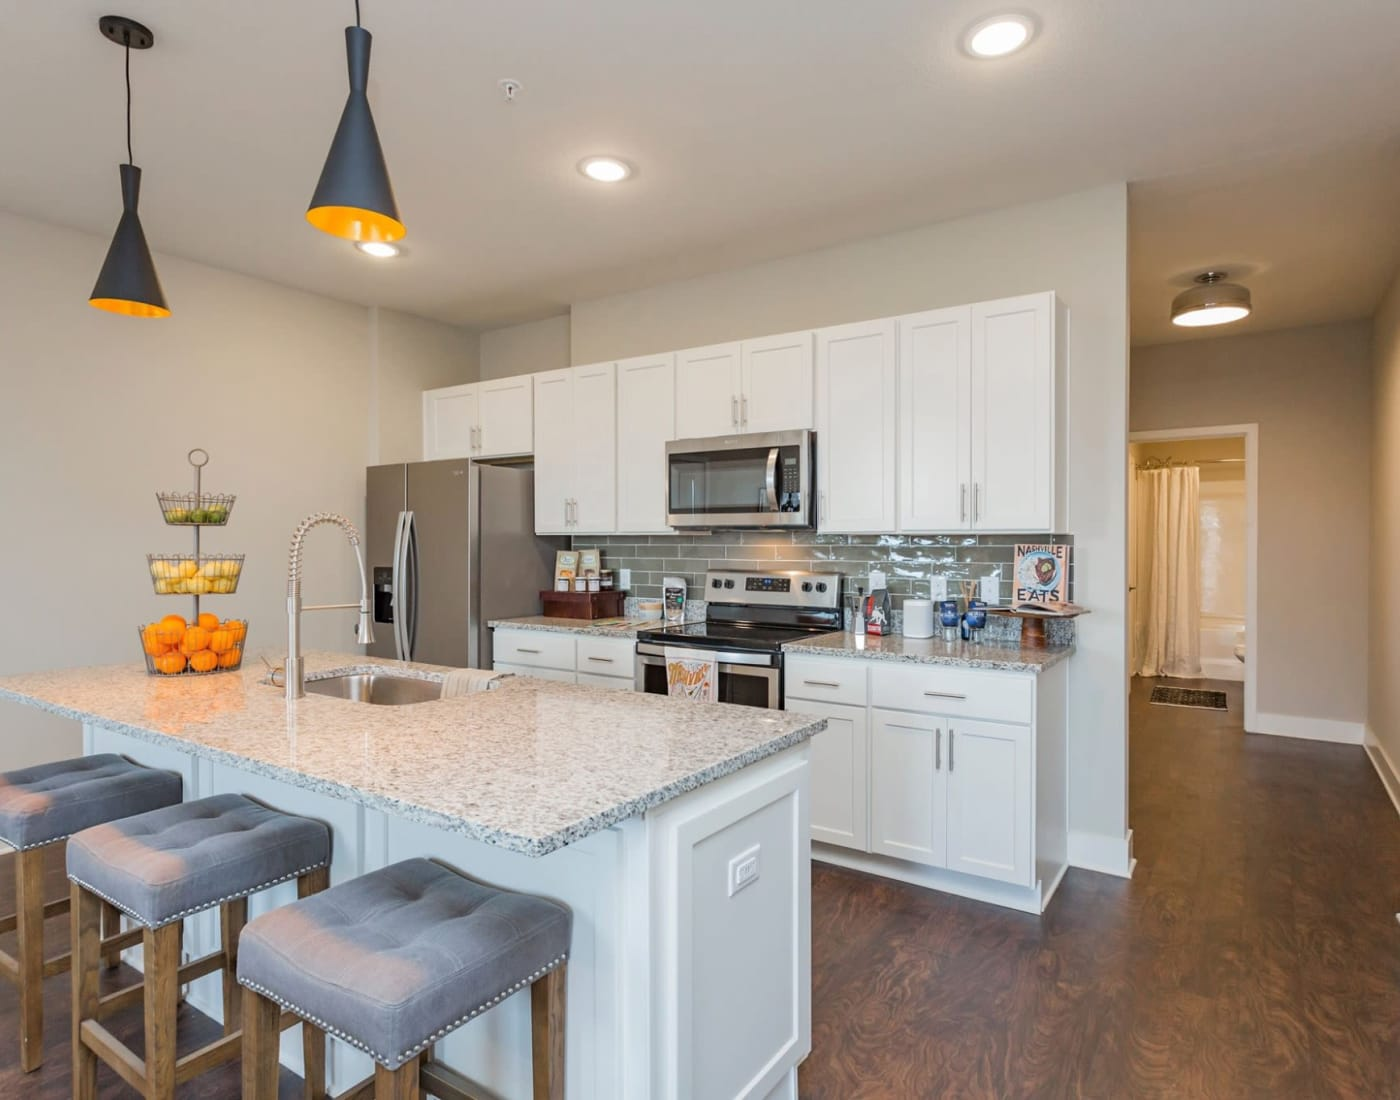 Kitchen with a breakfast bar at Rivertop Apartments in Nashville, Tennessee